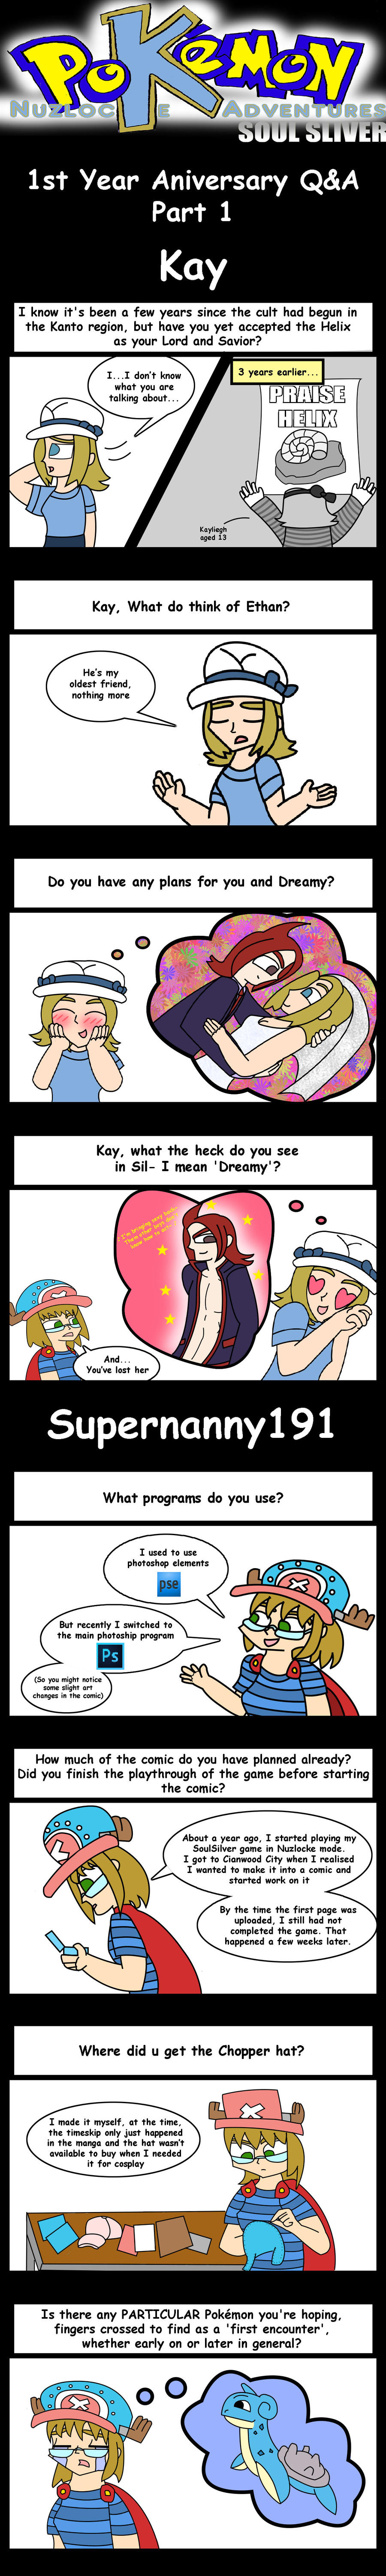 Nuzlocke 1st Year Q+A Part 1: Kay and Super by supernanny191